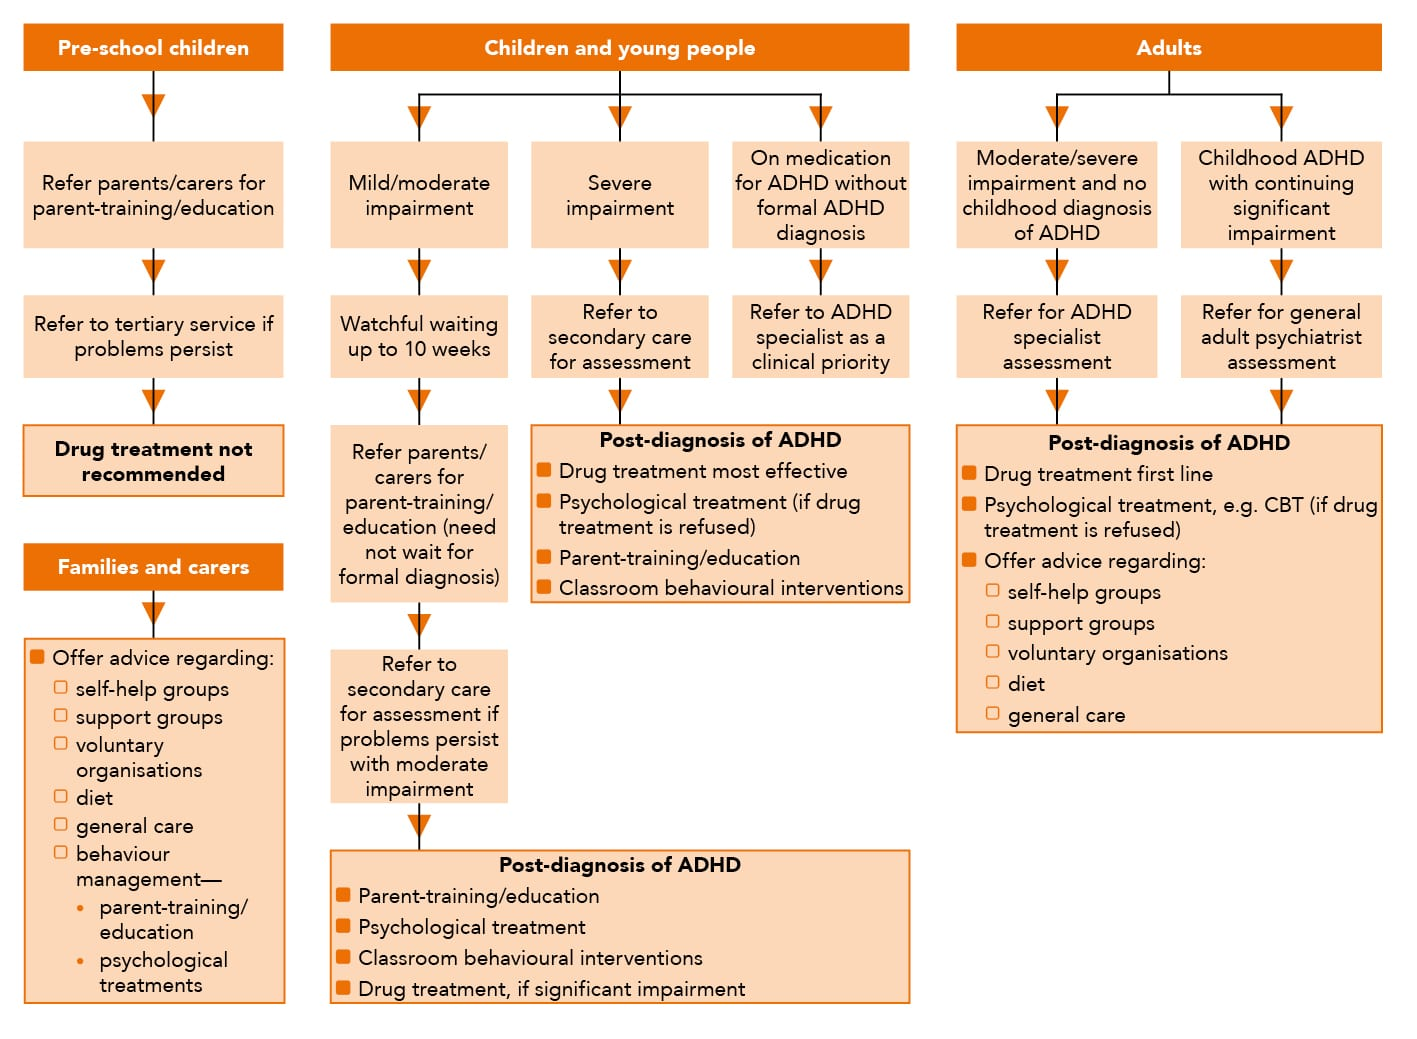 Outline of interventions and referral of individuals with ADHD in primary care based on NICE guideline CG72